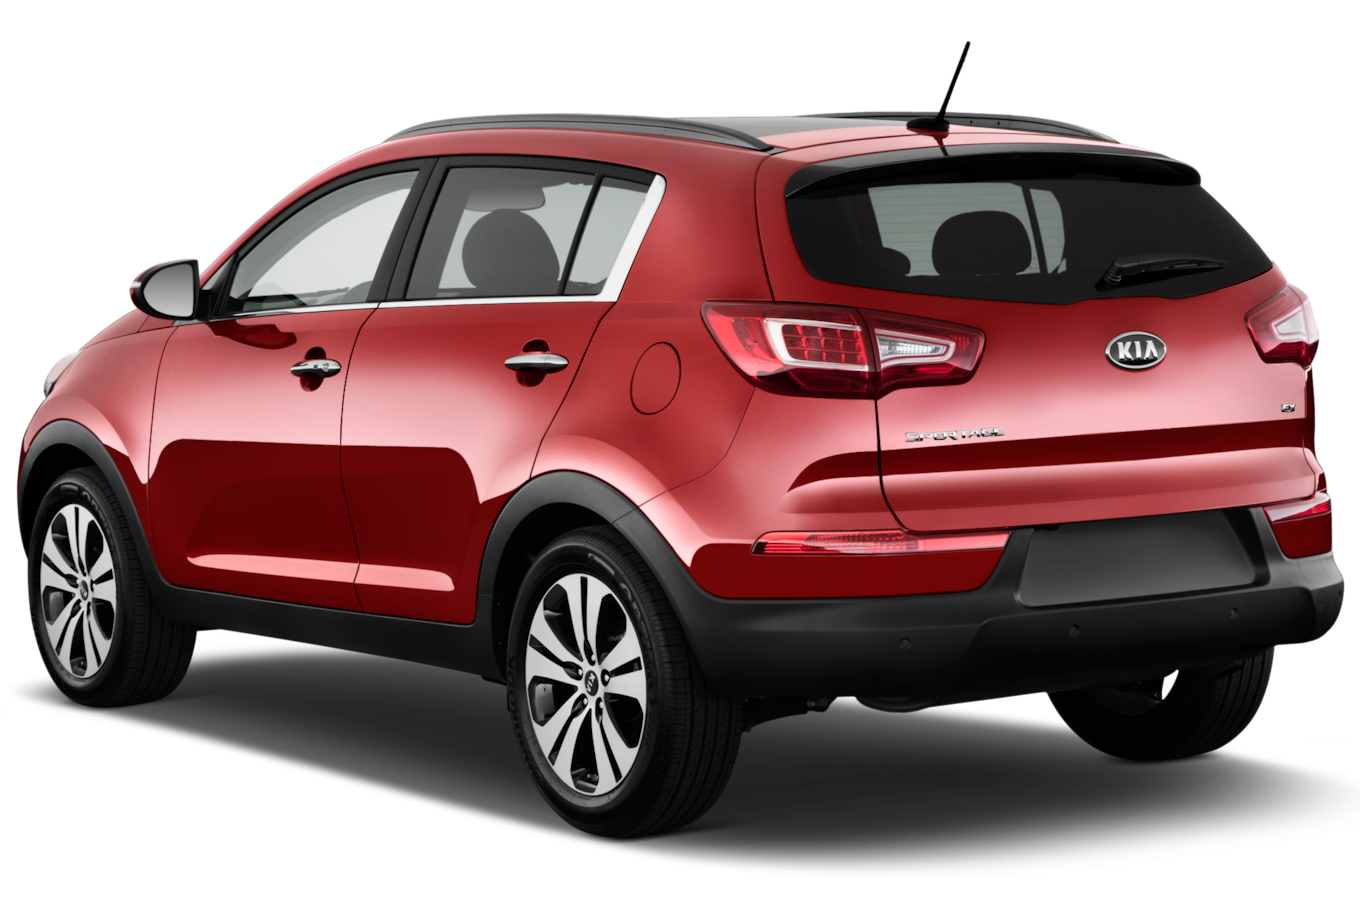 2011 Kia Sportage Reviews and Rating | Motor Trend